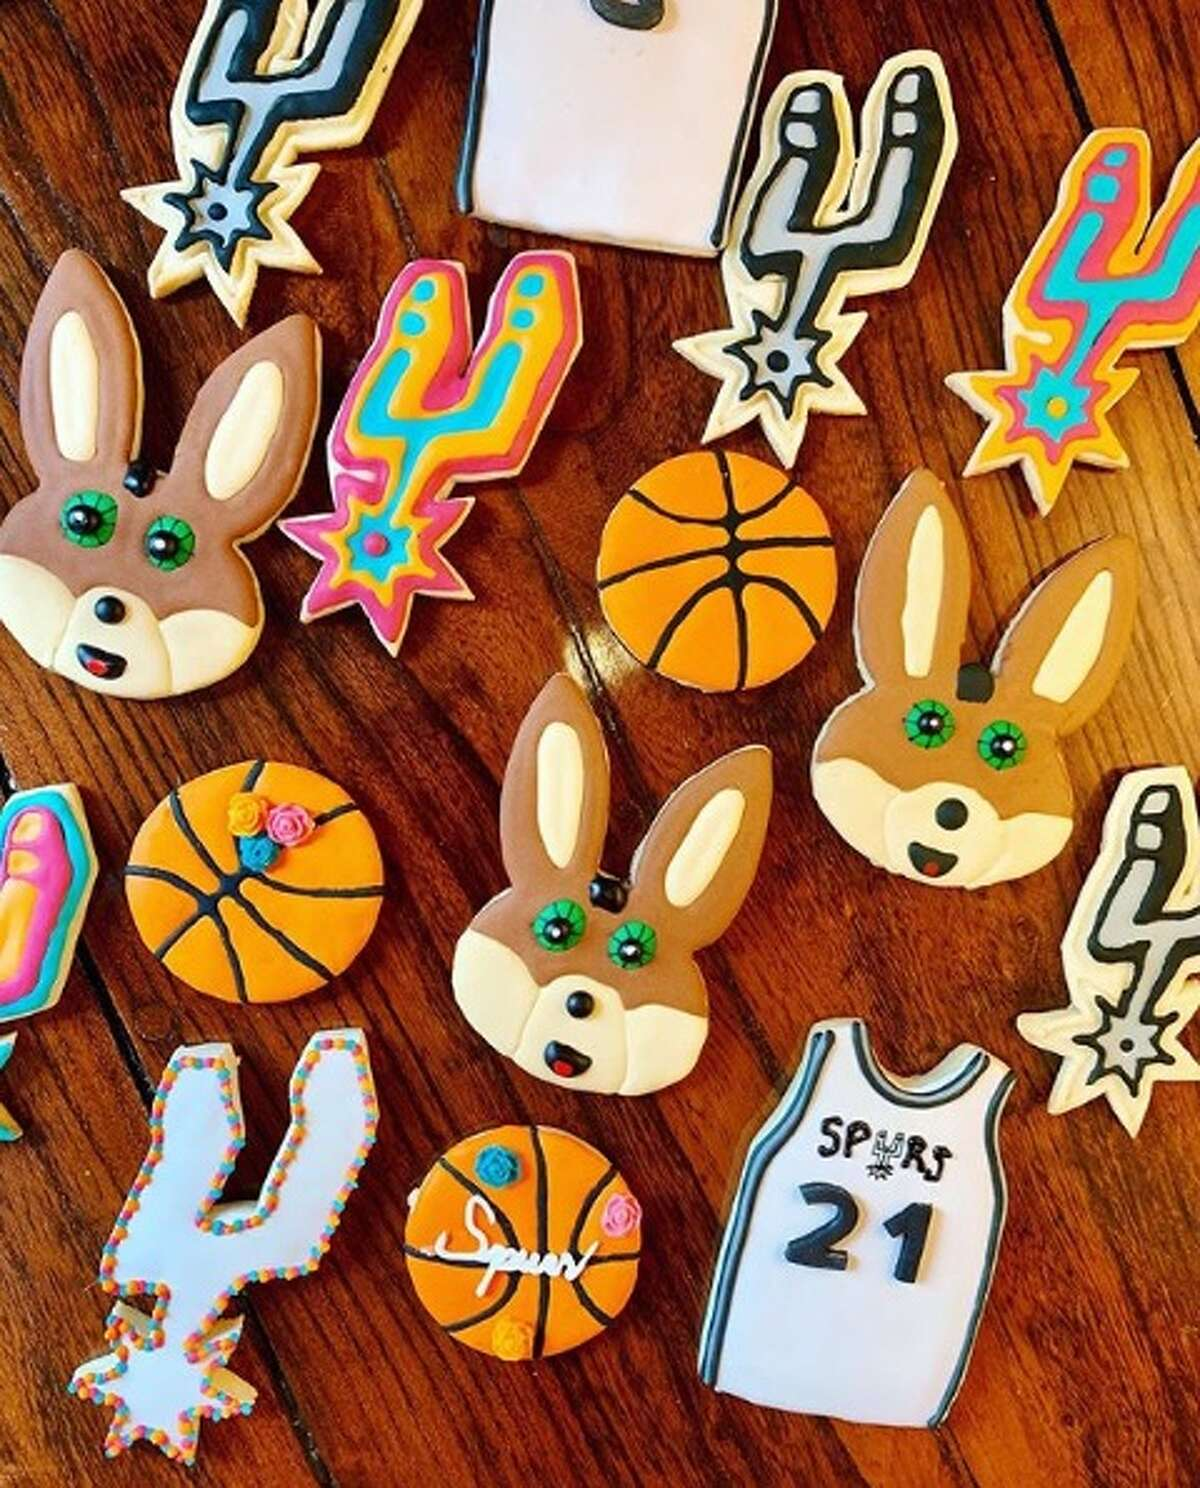 Inspired by the colorful and vibrant culture in San Antonio, a family of three are cooking up sweet Spurs and Fiesta-themed cookies and cakes for their new online bakery business.